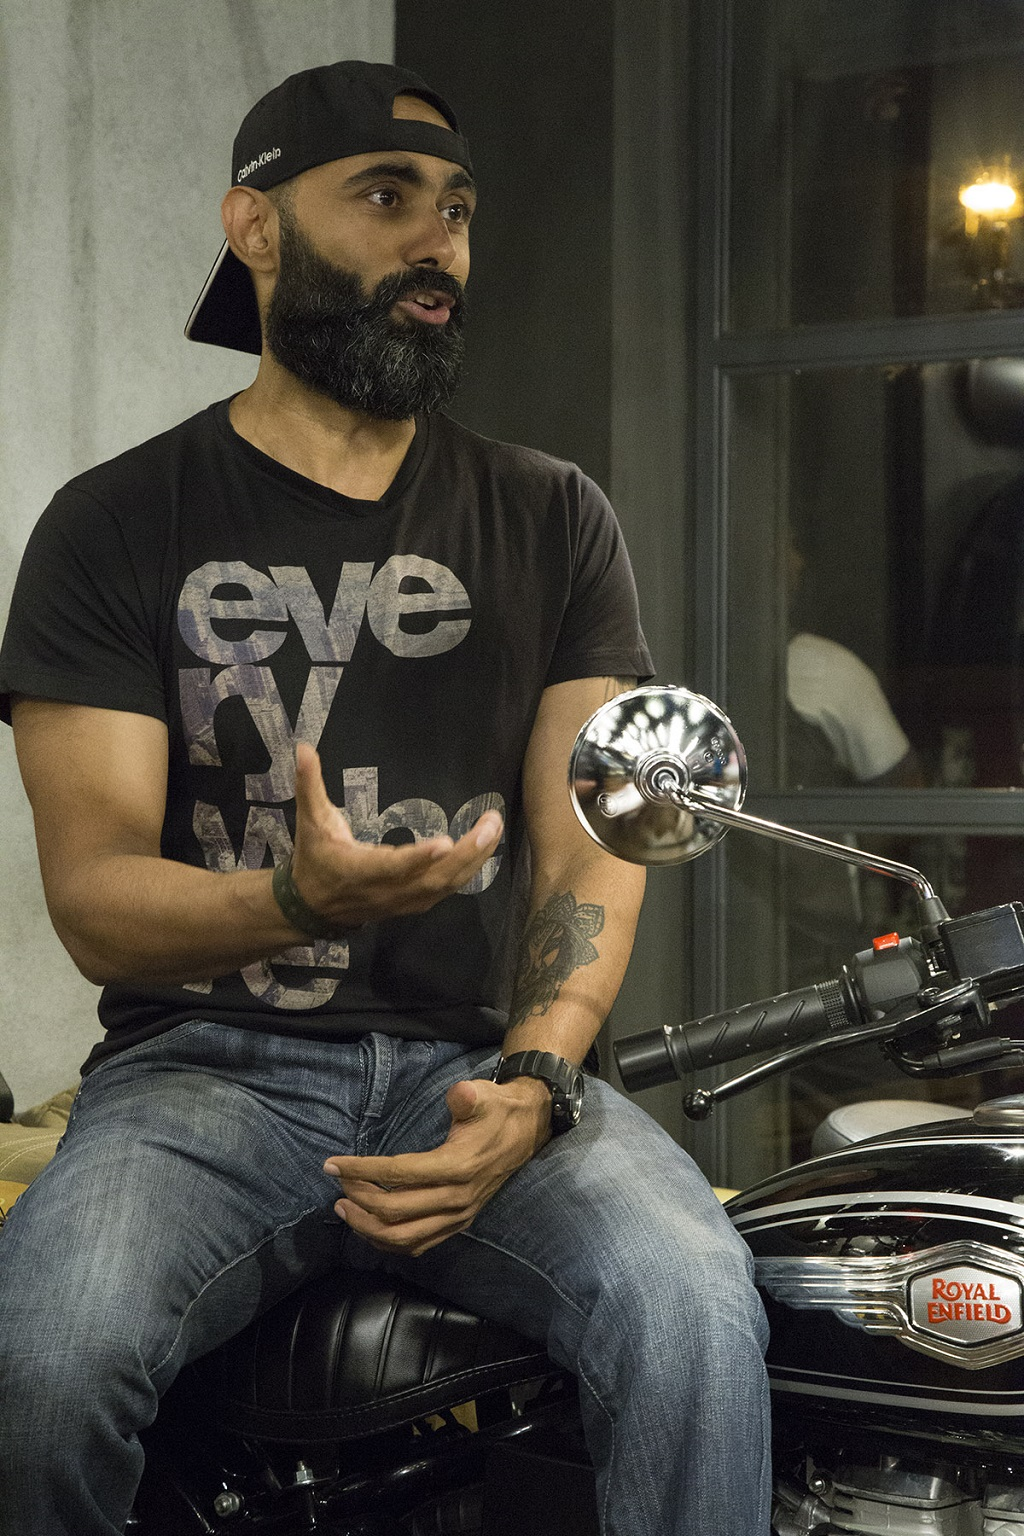 Royal Enfield Celebrates The Spirit Of Riding With Motorcycle